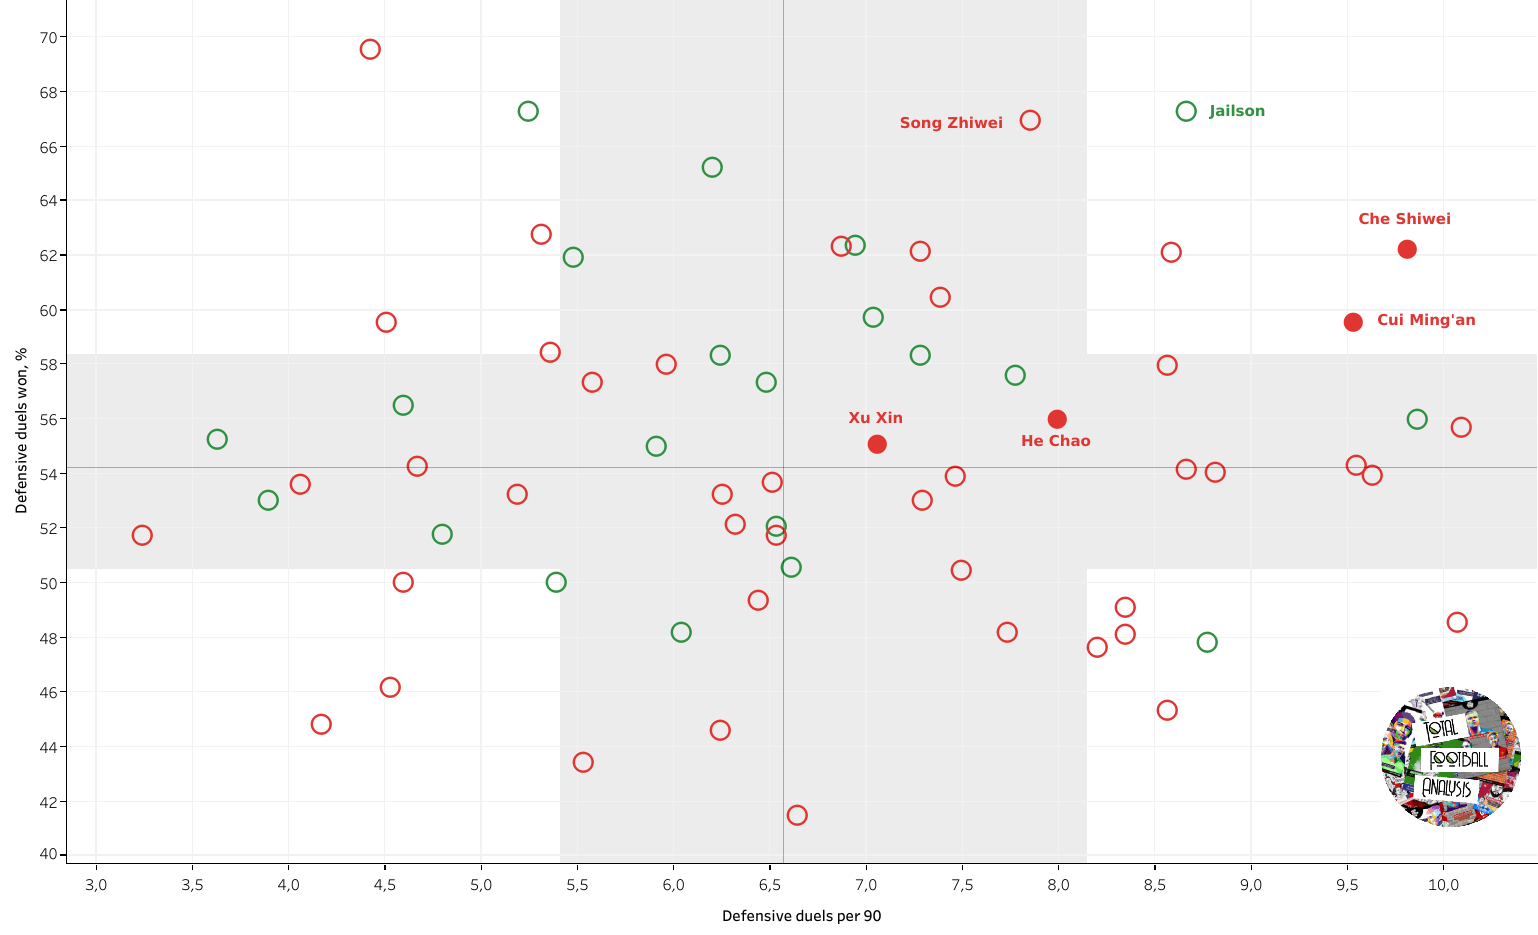 Fishing in troubled waters: finding the best local midfielders in the Chinese Super League data analysis statistics